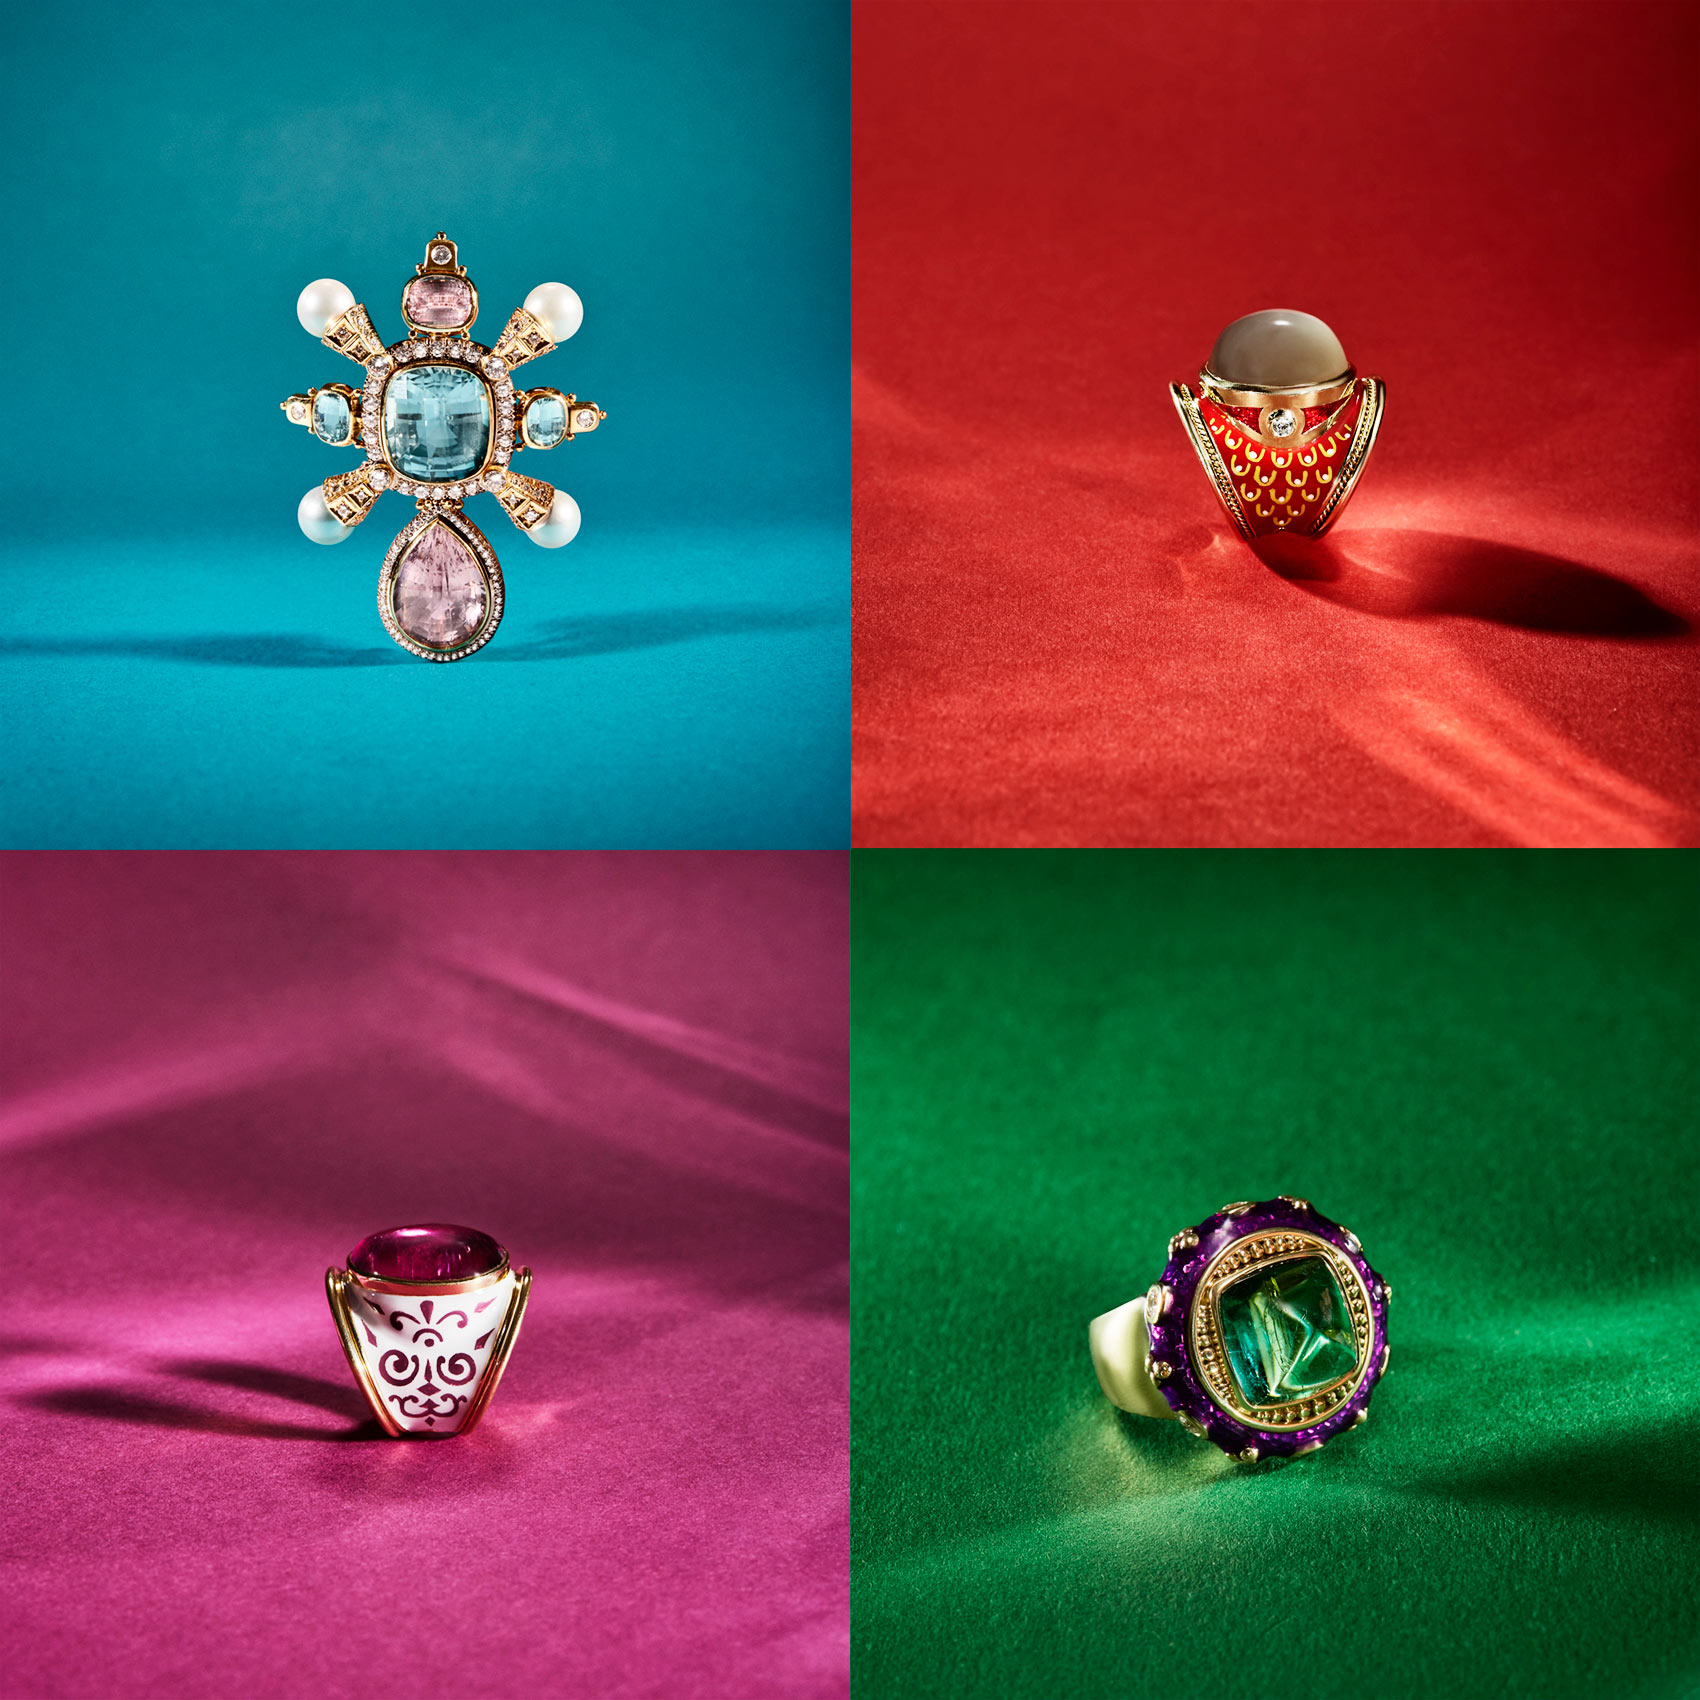 Jewelery  photographer - 4 pieces of exquisitely designed and hand rings with diamonds and precious stones.  Studio photography for designer jewellery business